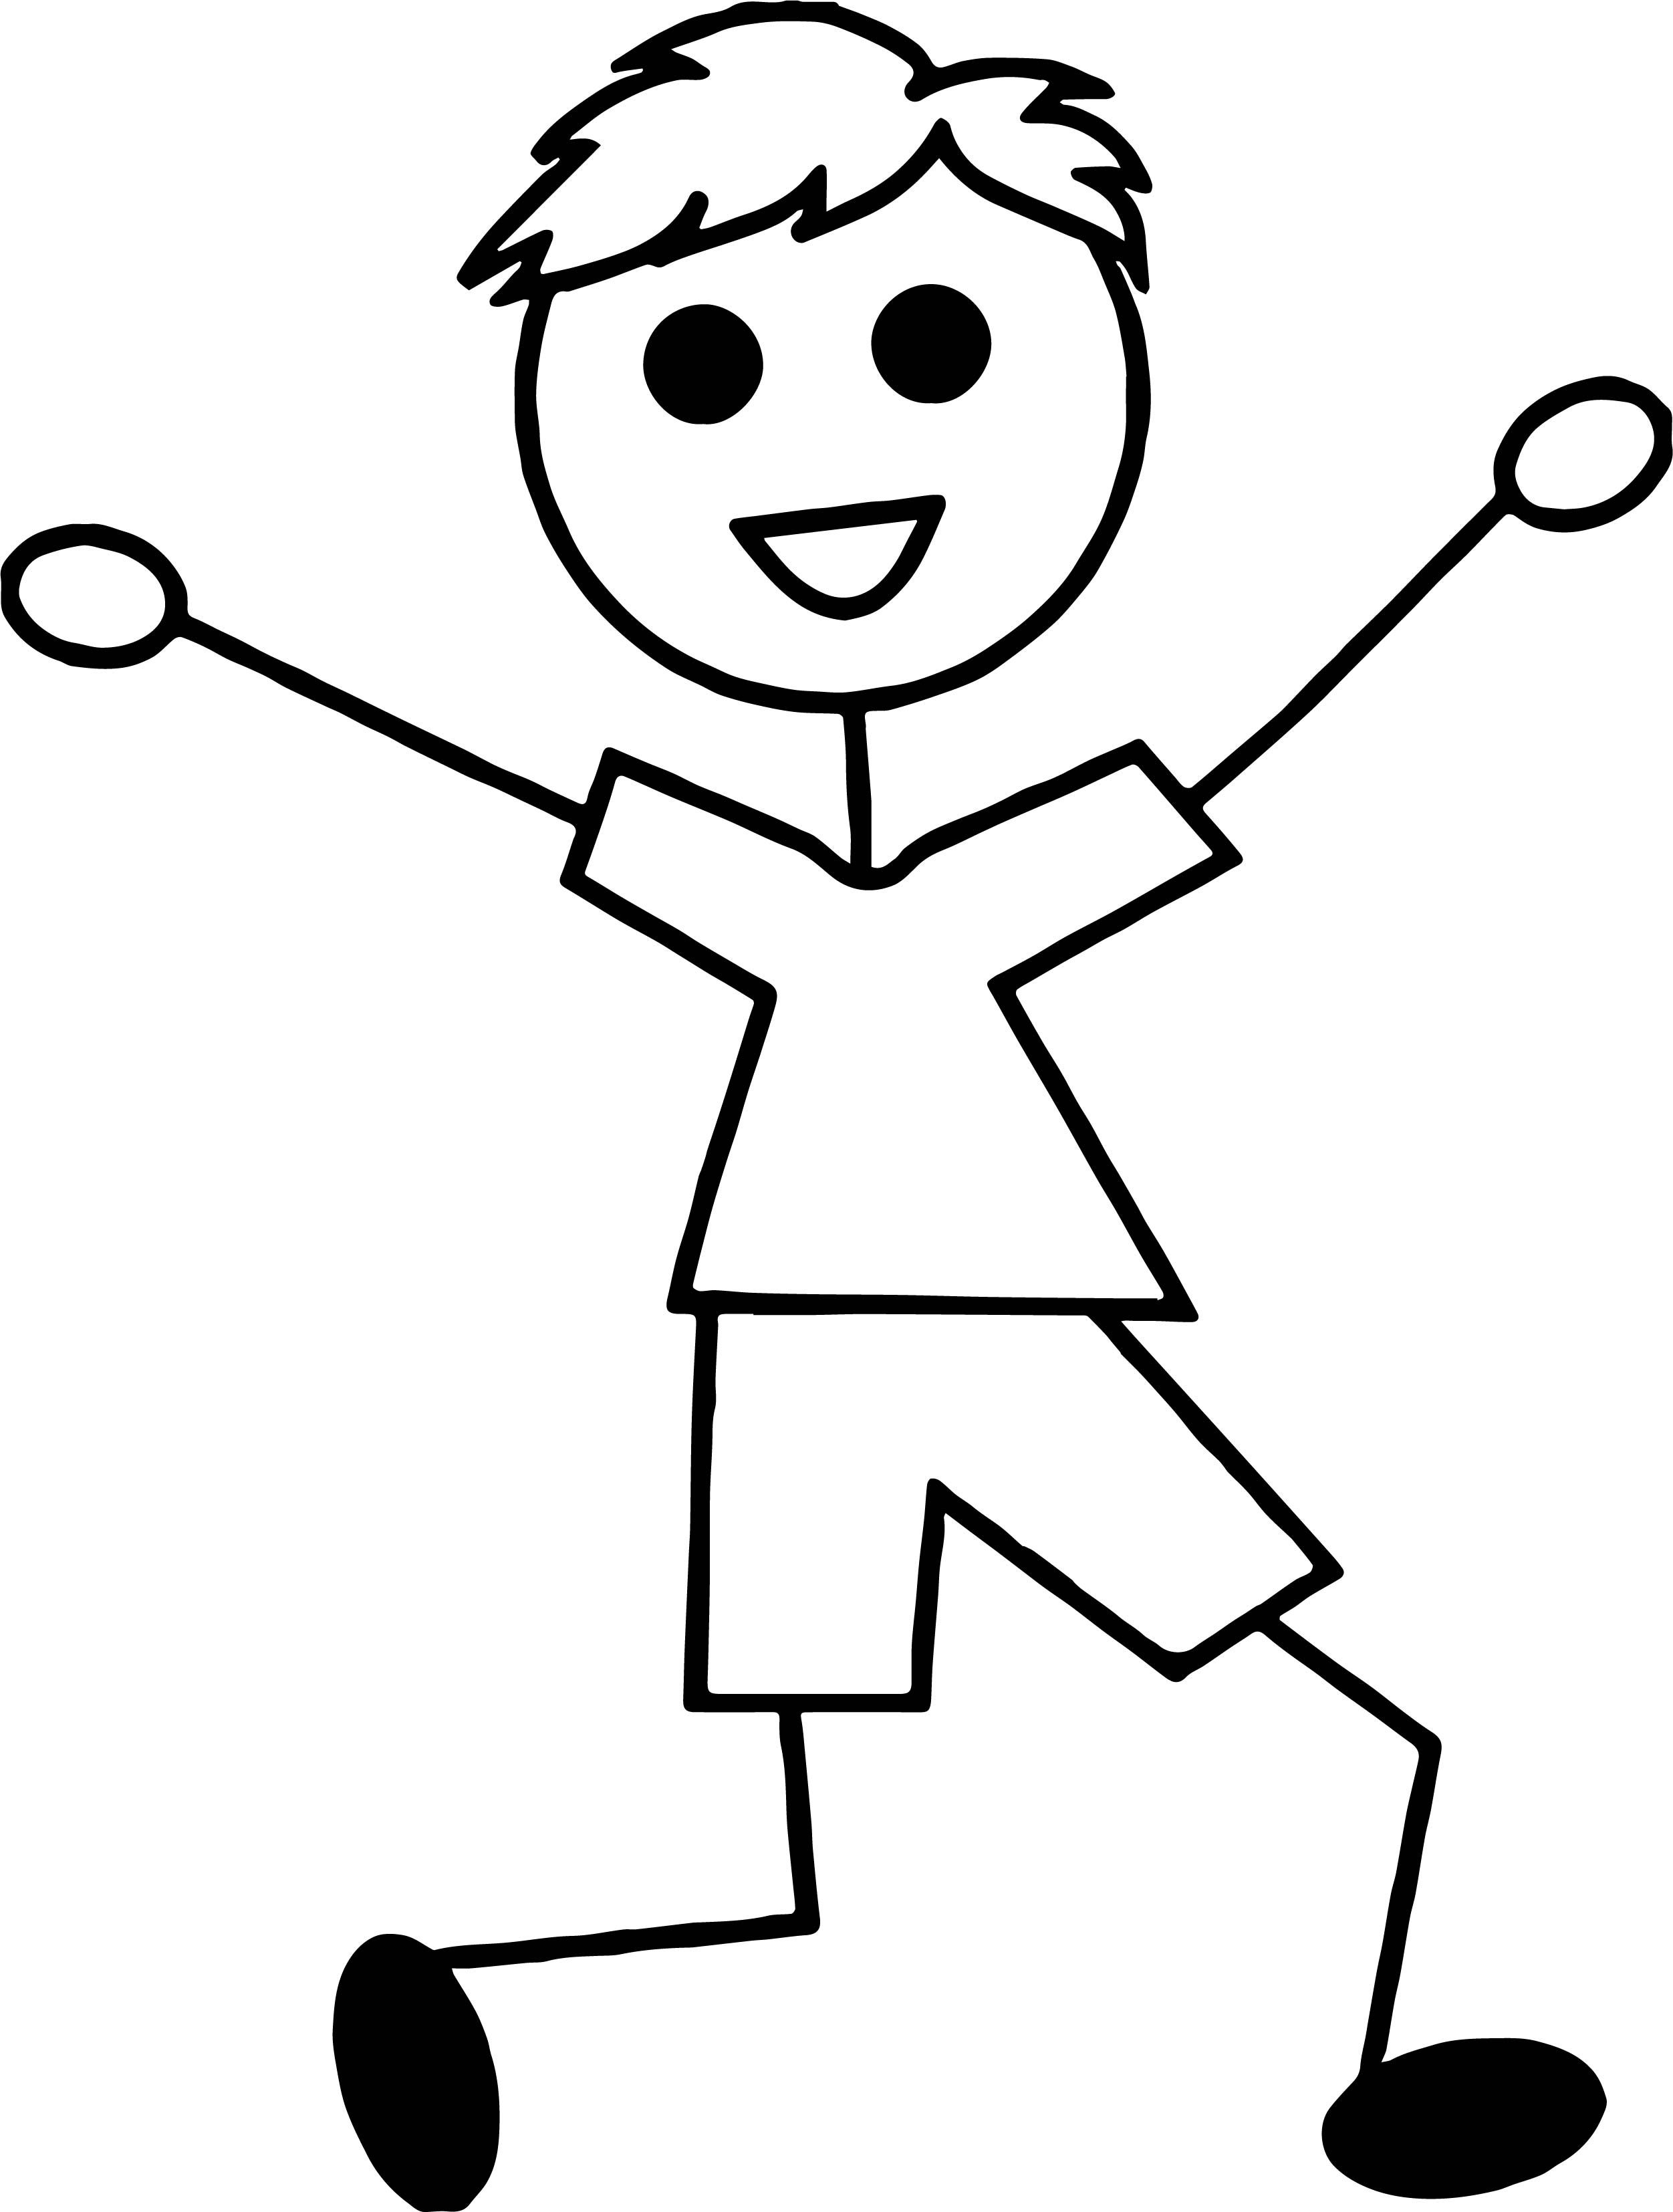 Awesome Stick Boy Coloring Page Boy Coloring Coloring Pages For